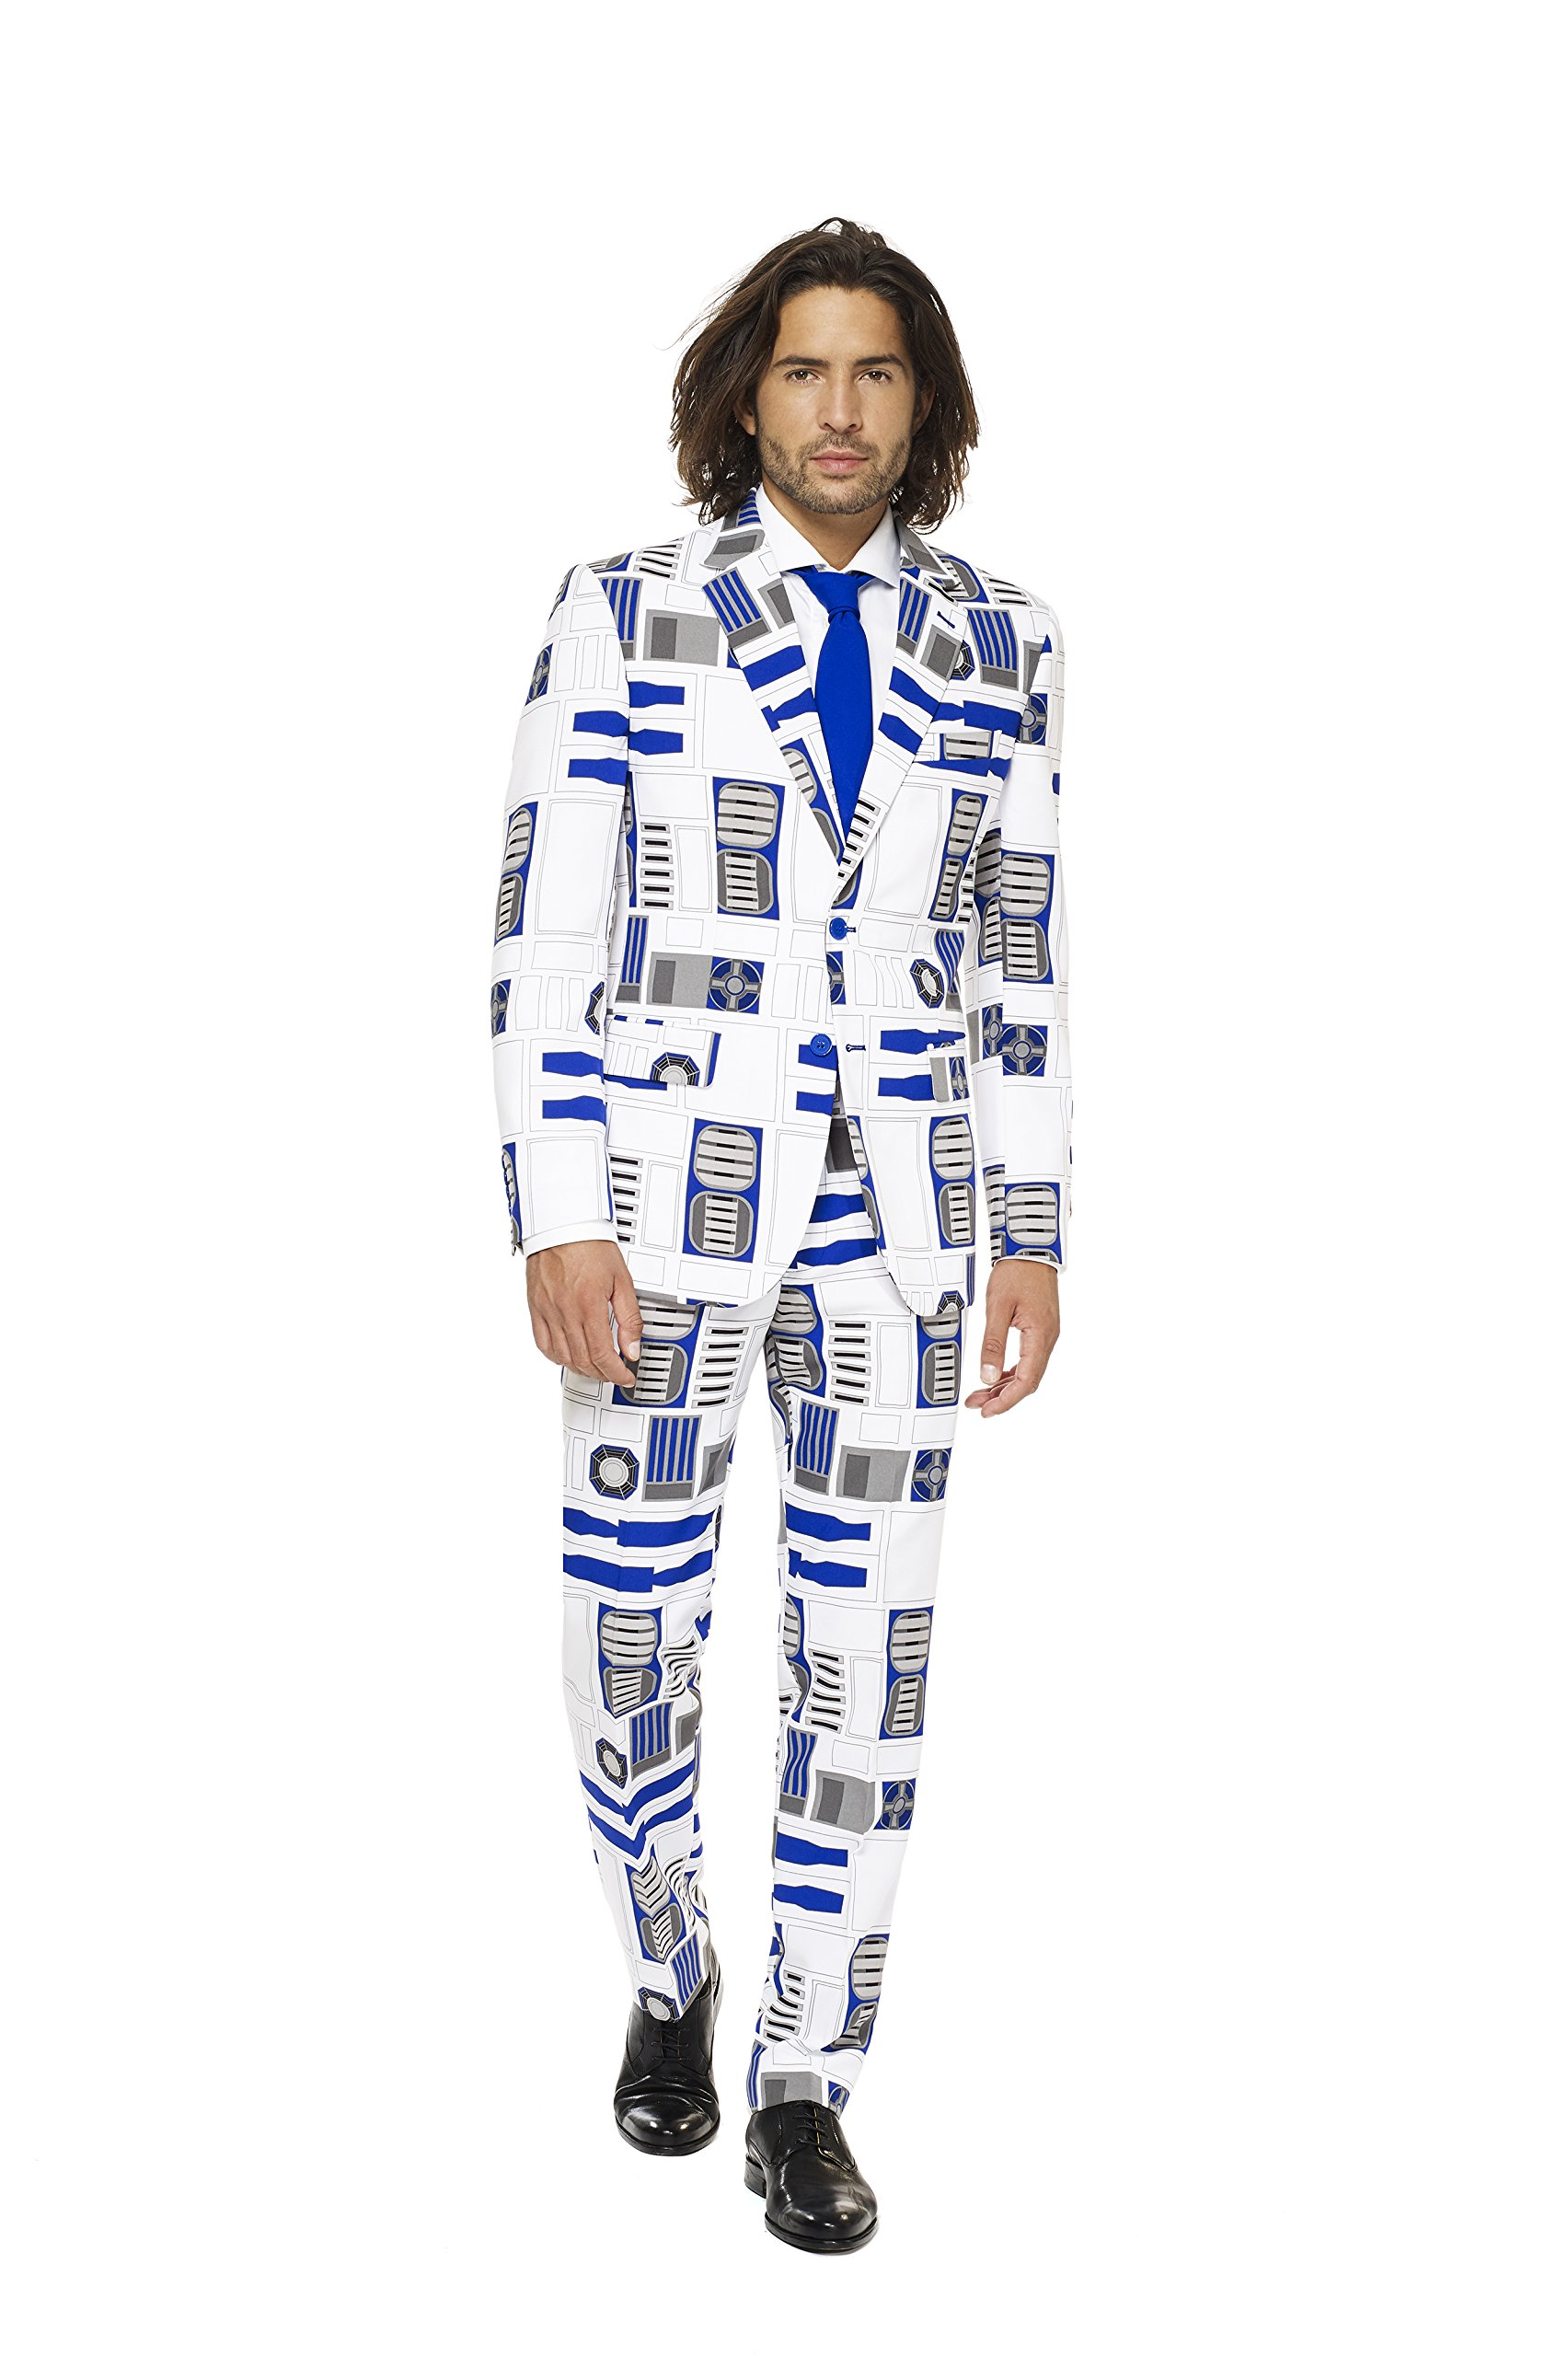 Mens R2-D2 Suit and Tie By Opposuits,R2-d2,48 by Opposuits